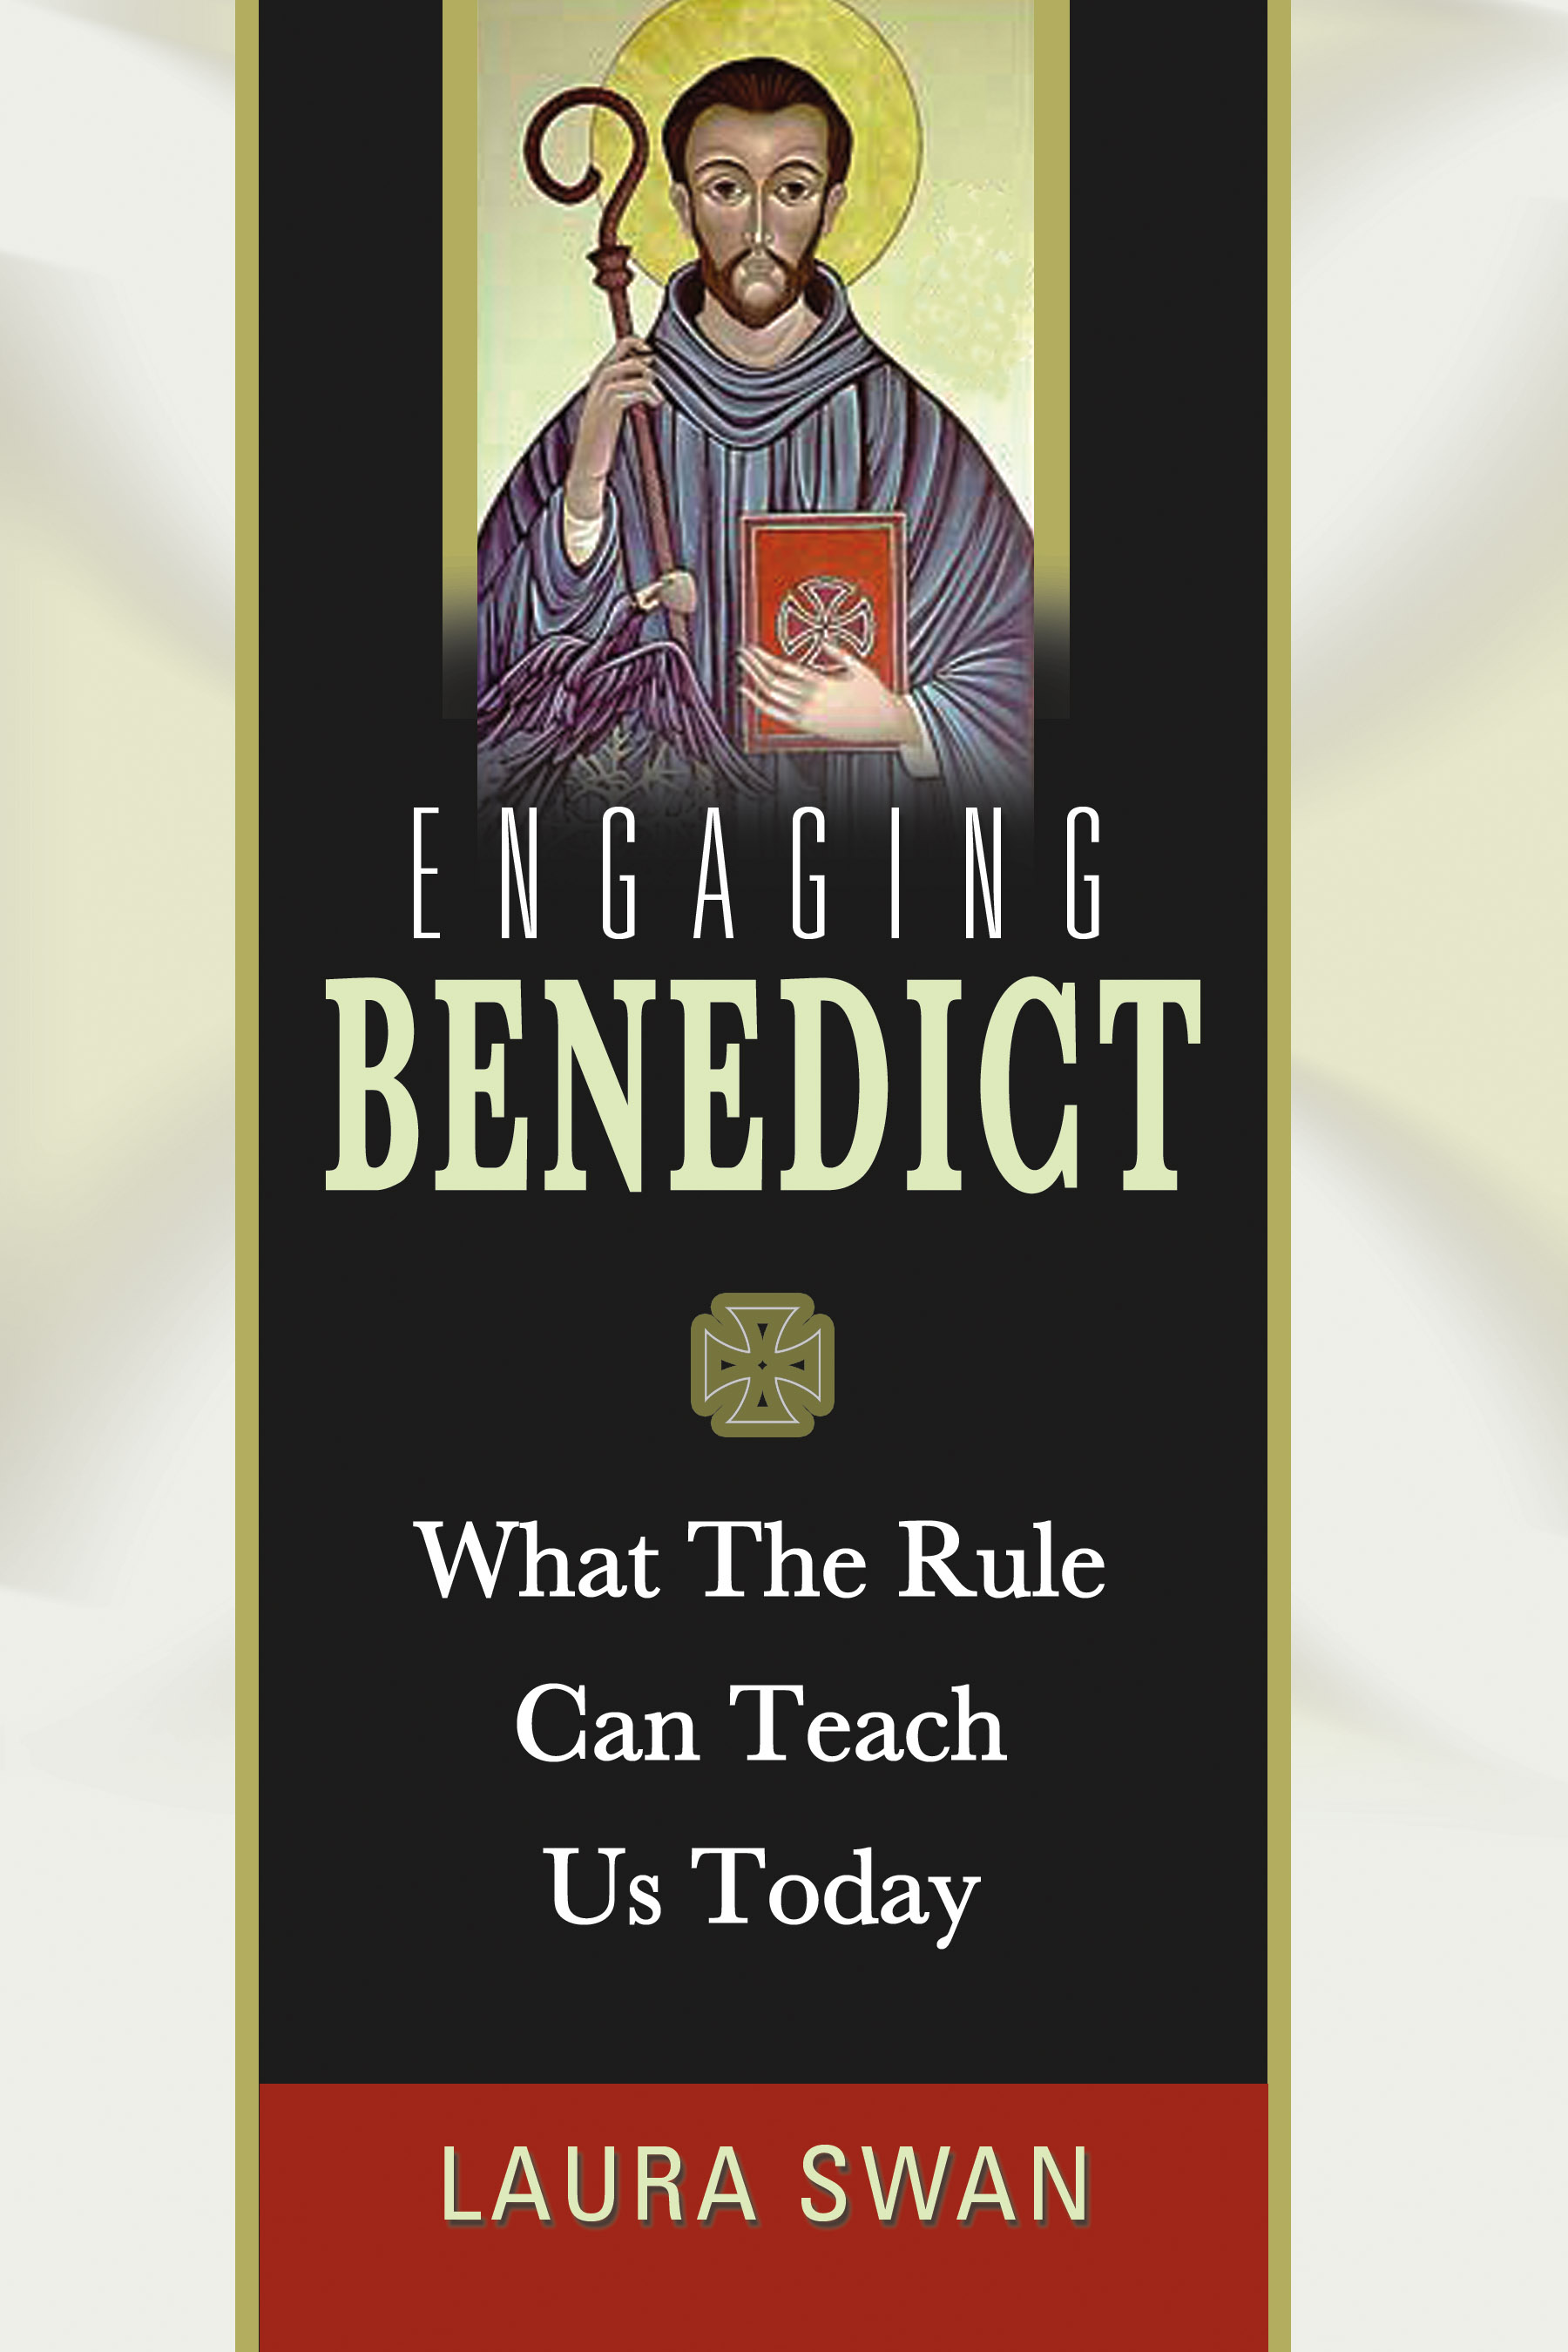 Engaging Benedict